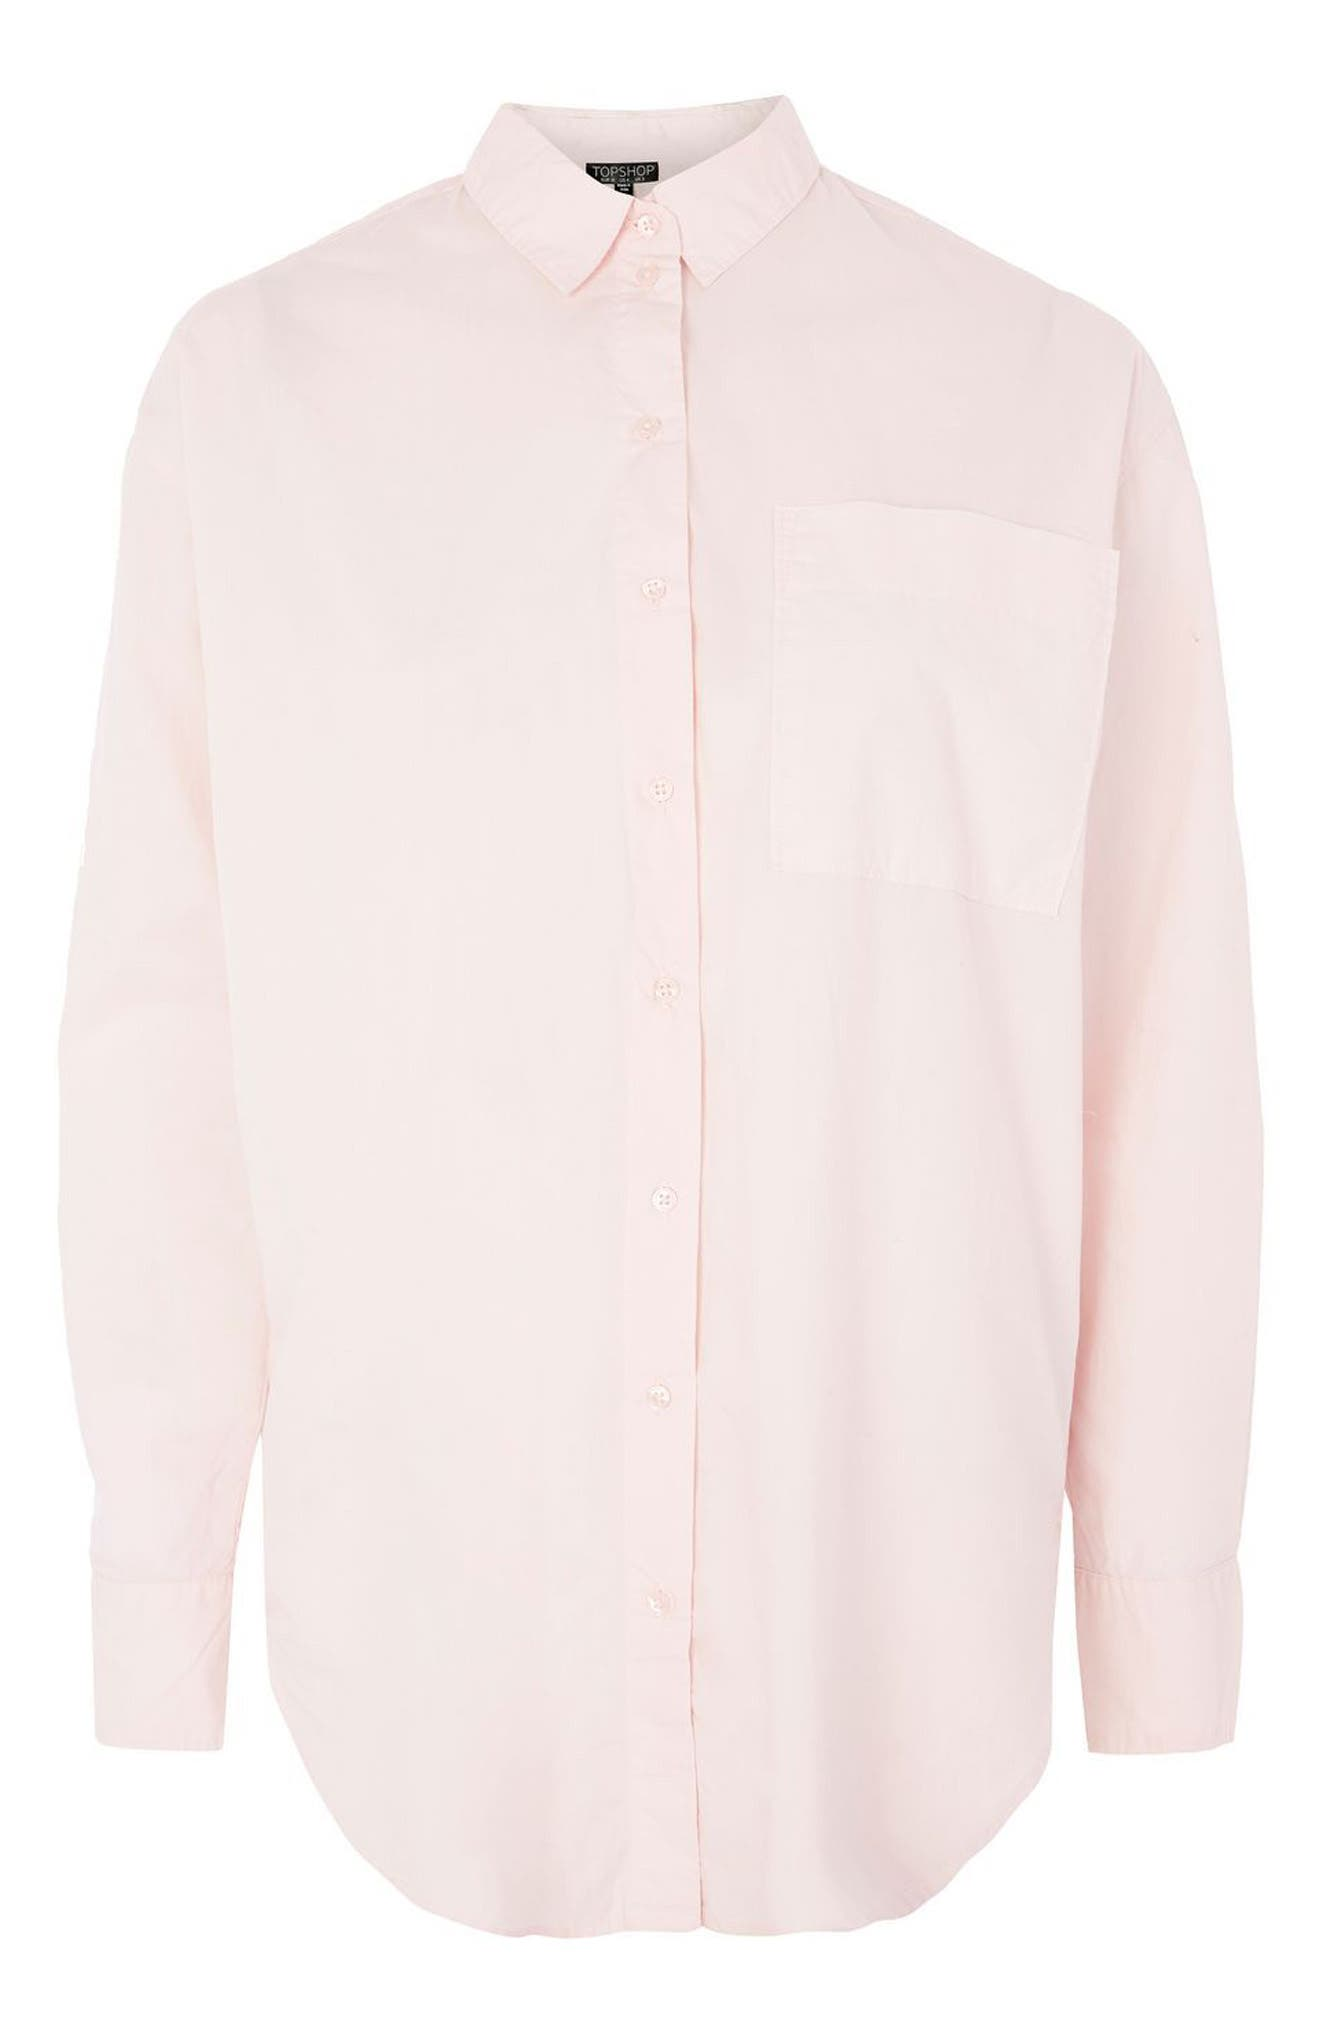 Olly Oversize Poplin Shirt,                             Alternate thumbnail 4, color,                             680